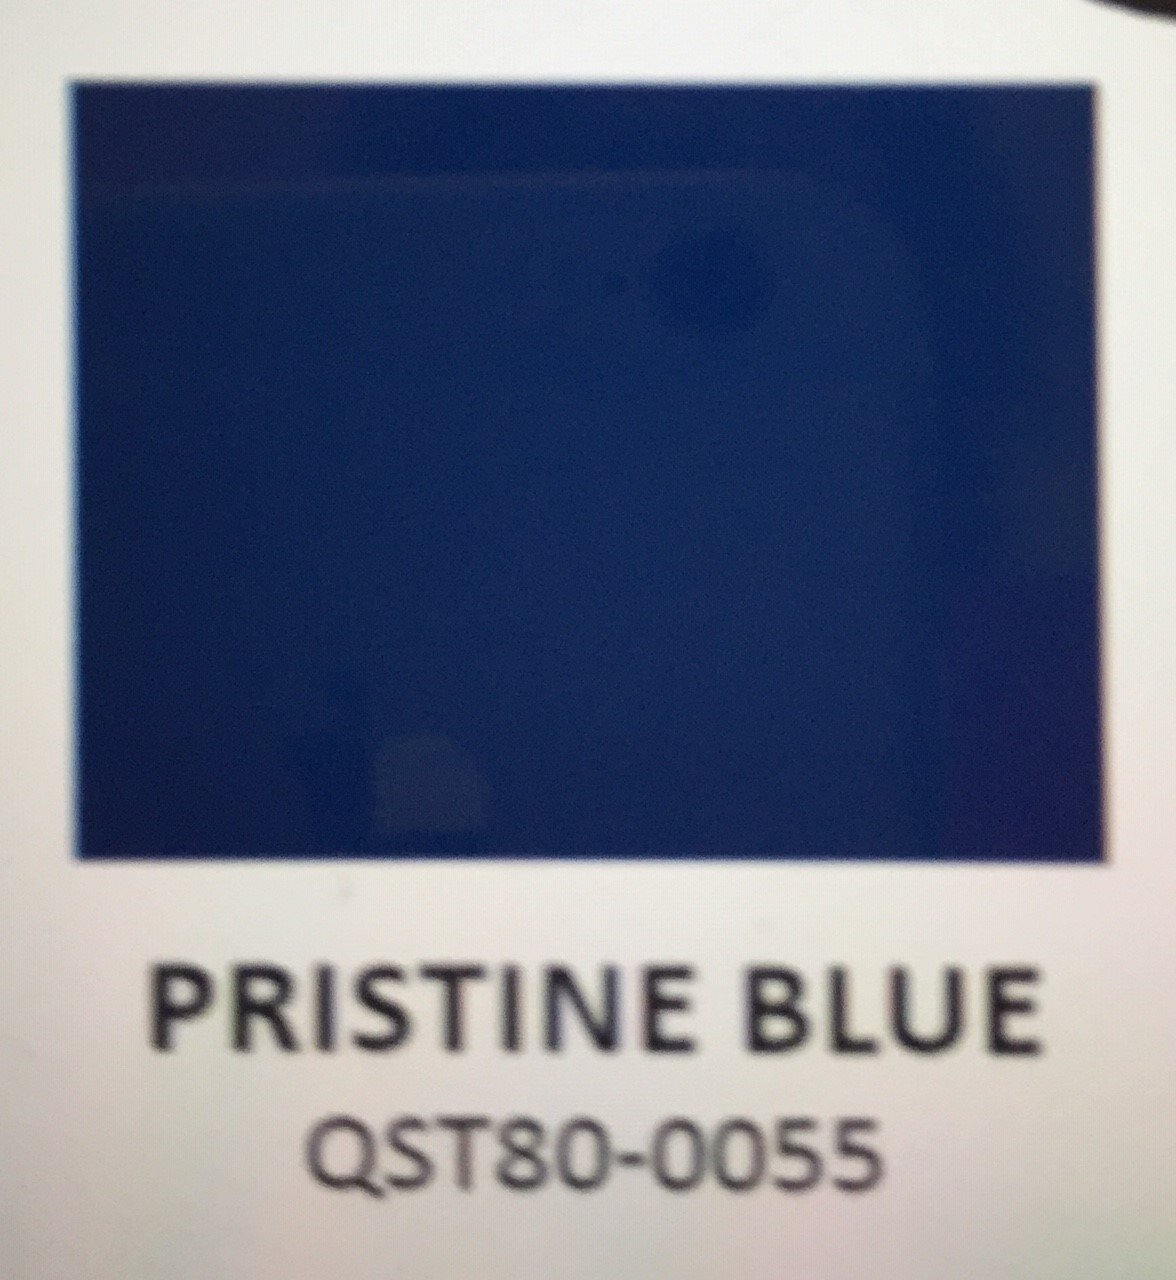 Quilters Select 80wt Para Cot/Poly - Pristine Blue